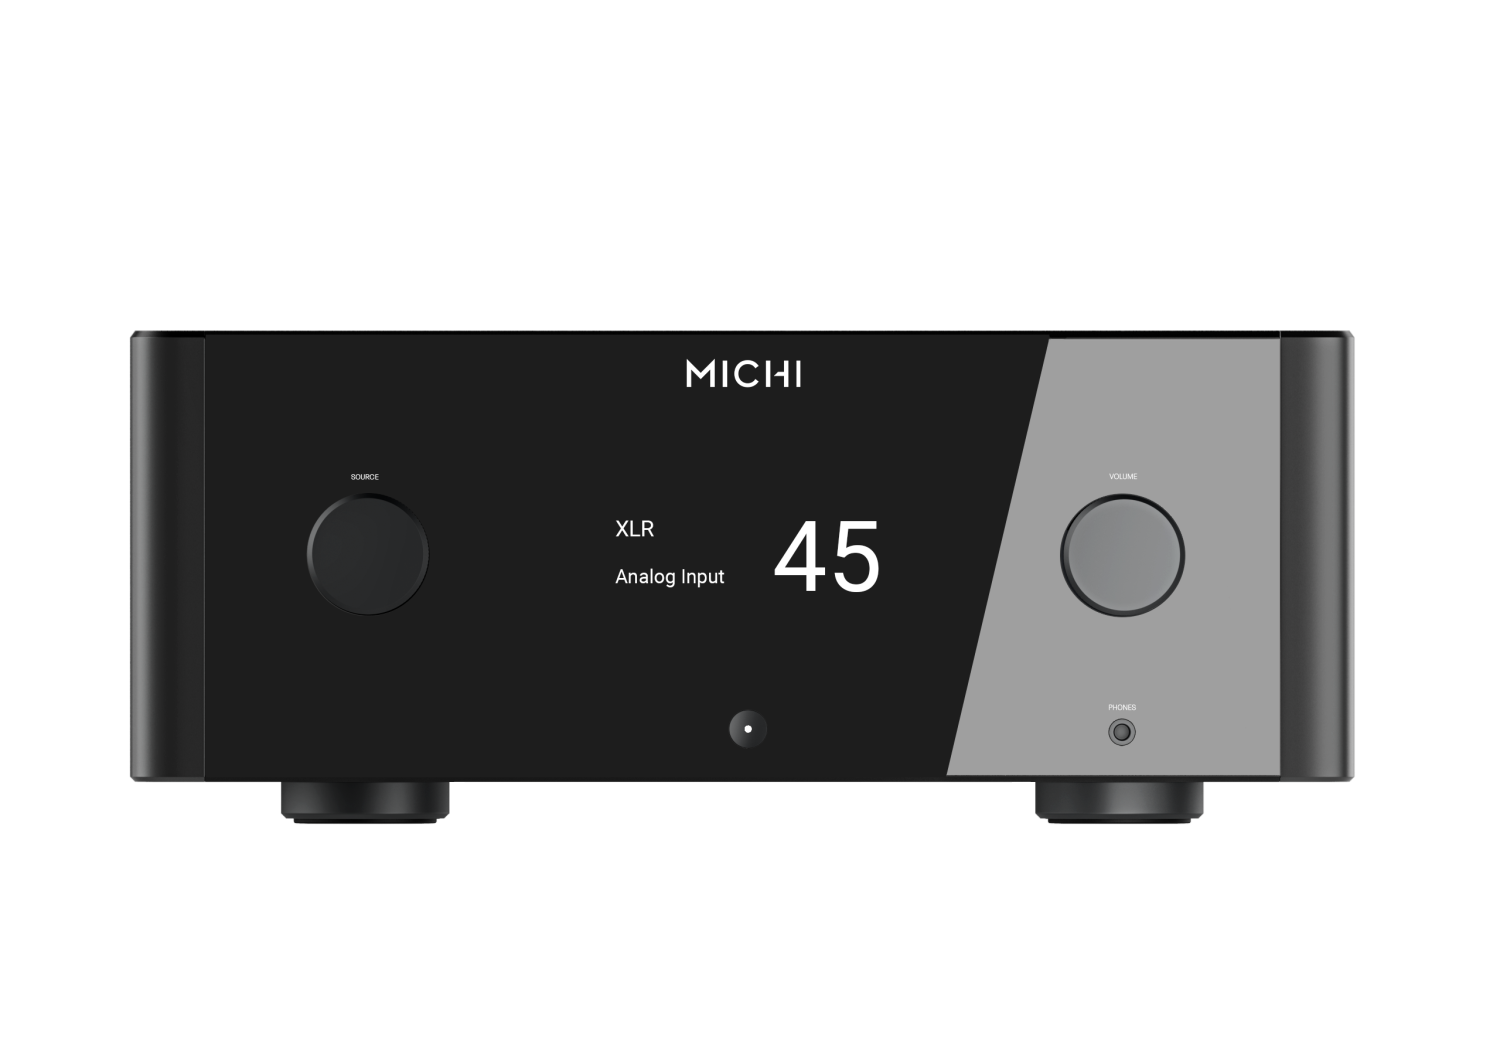 Rotel Michi X5 High End Integrert Forsterker med DAC 2x350w